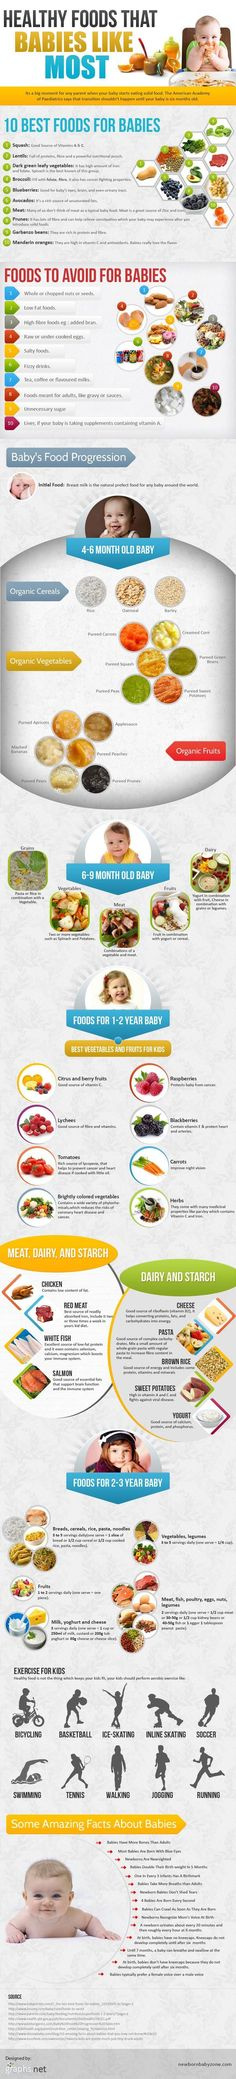 Keep your little ones healthy from day one! #healthykids #healthyfood #babies